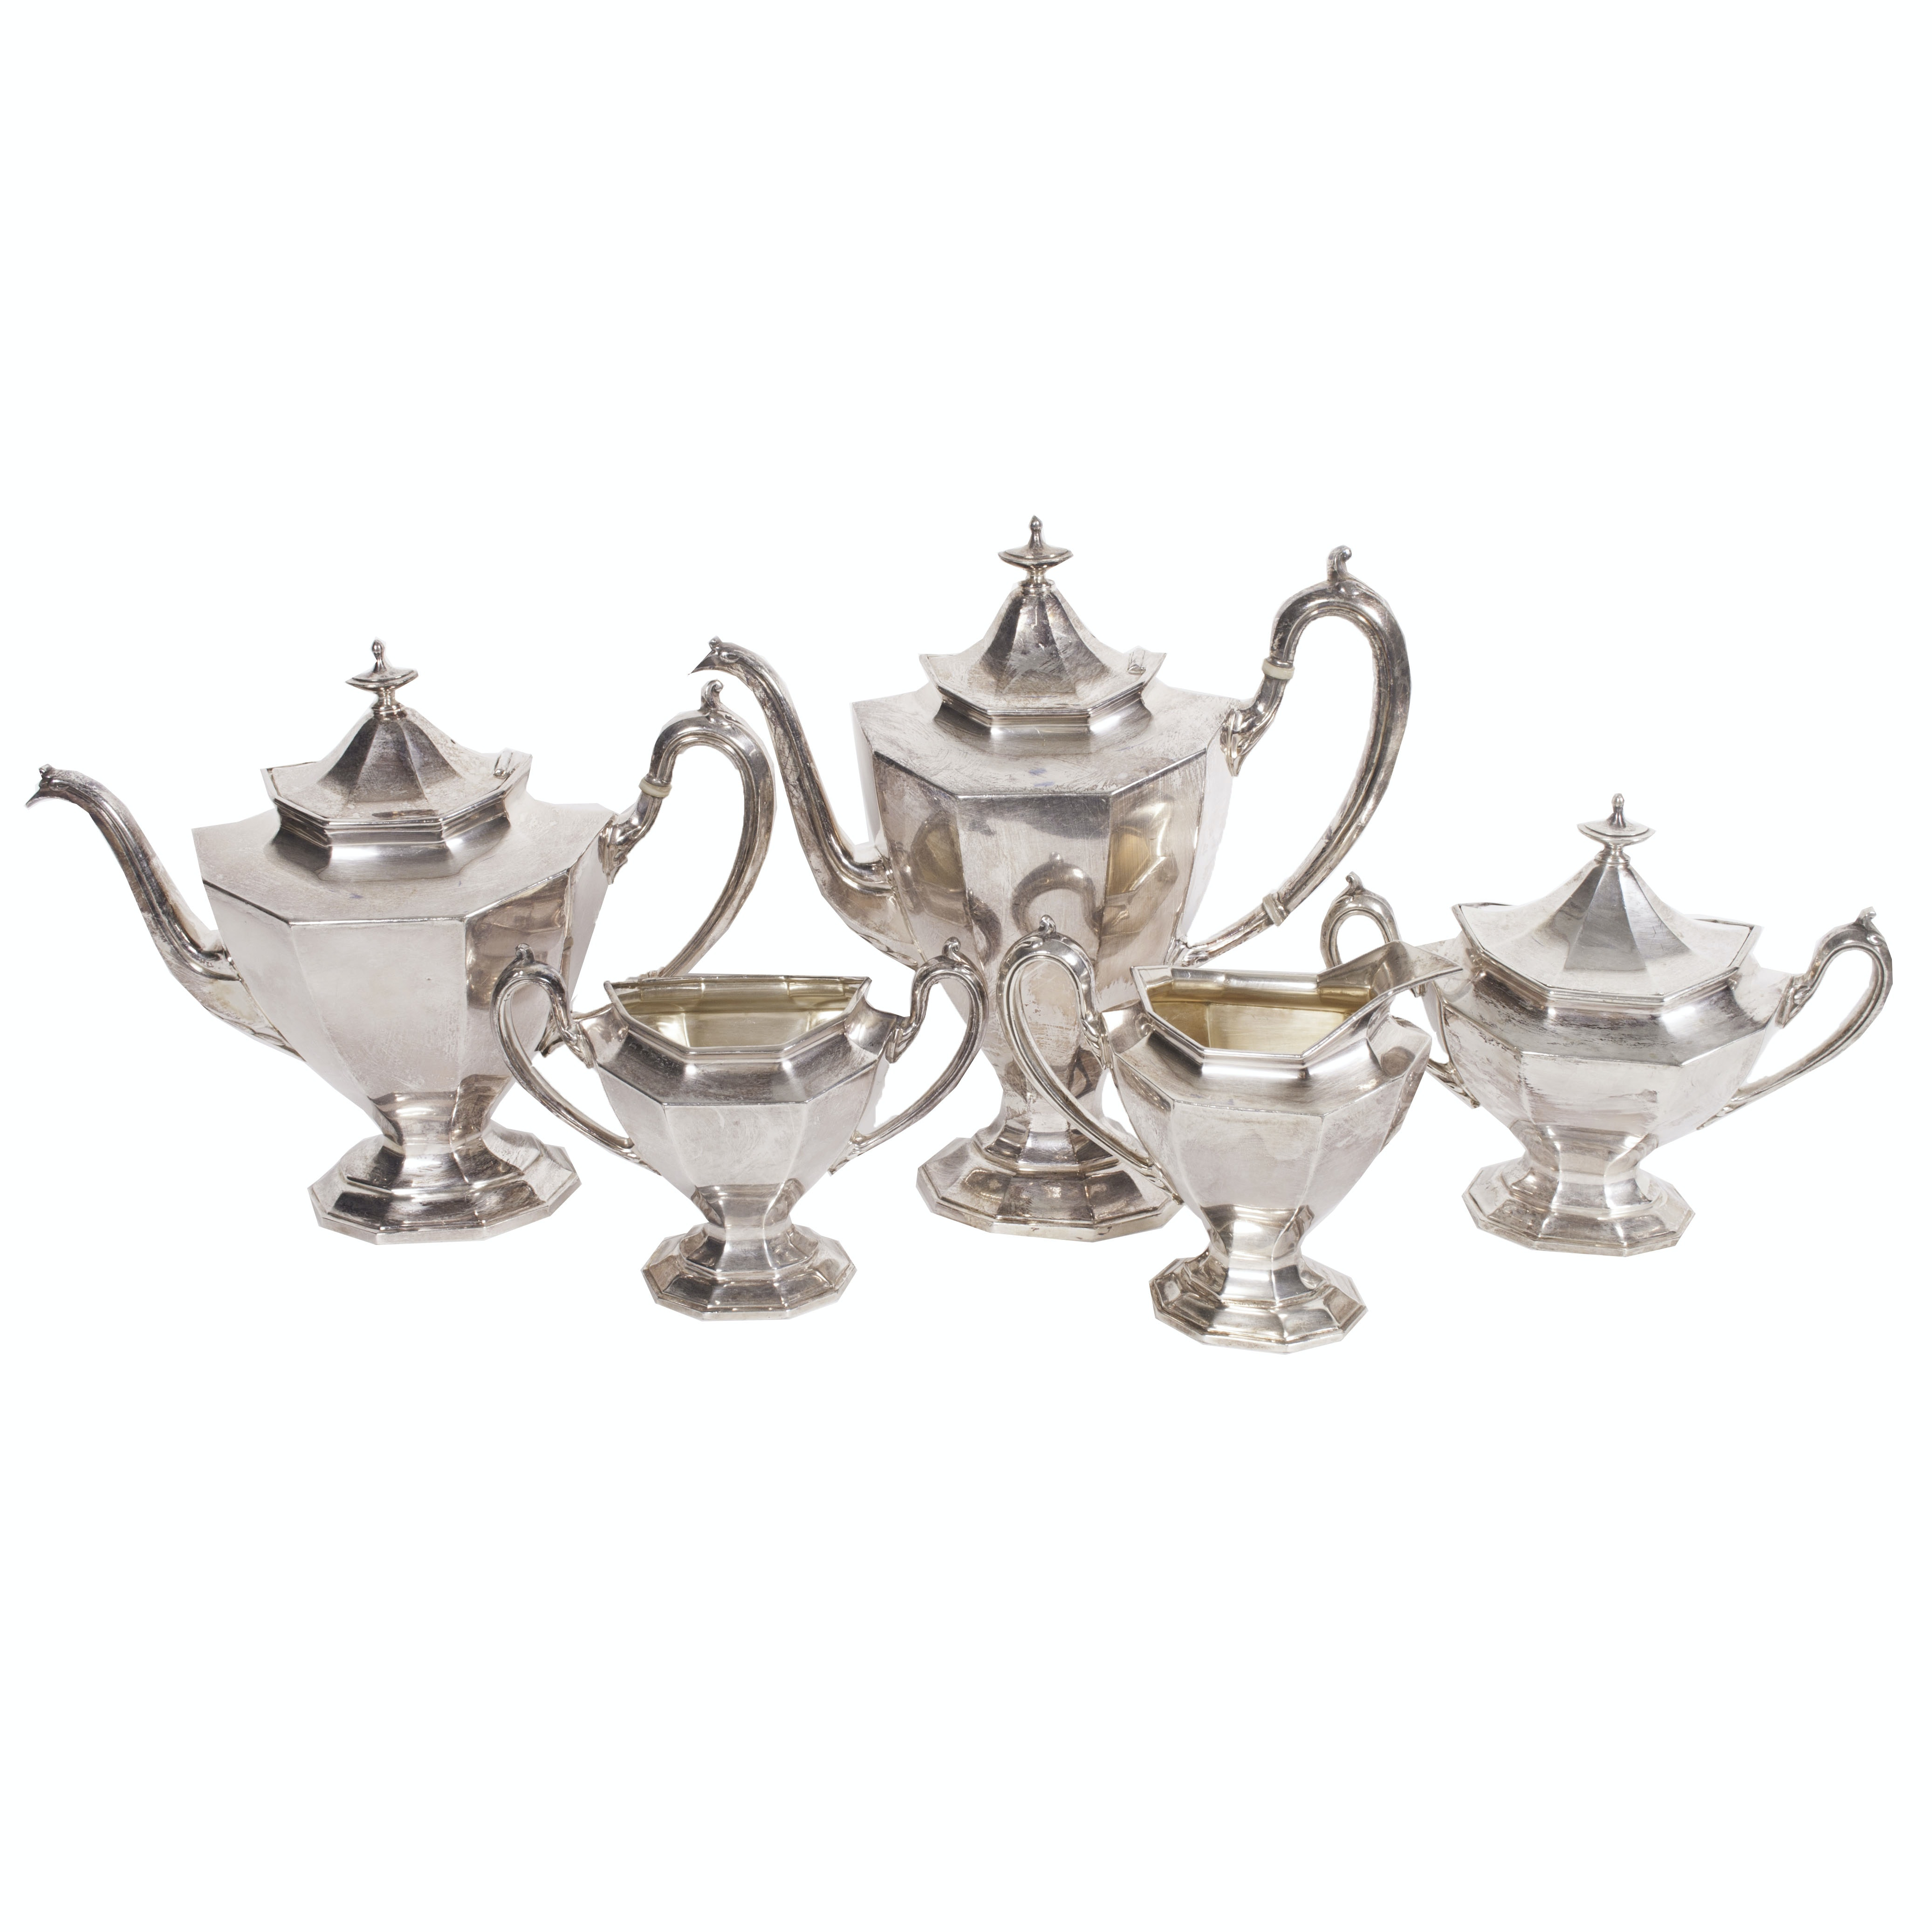 "Reed & Barton Silver Plate ""Sierra"" Tea and Coffee Service"